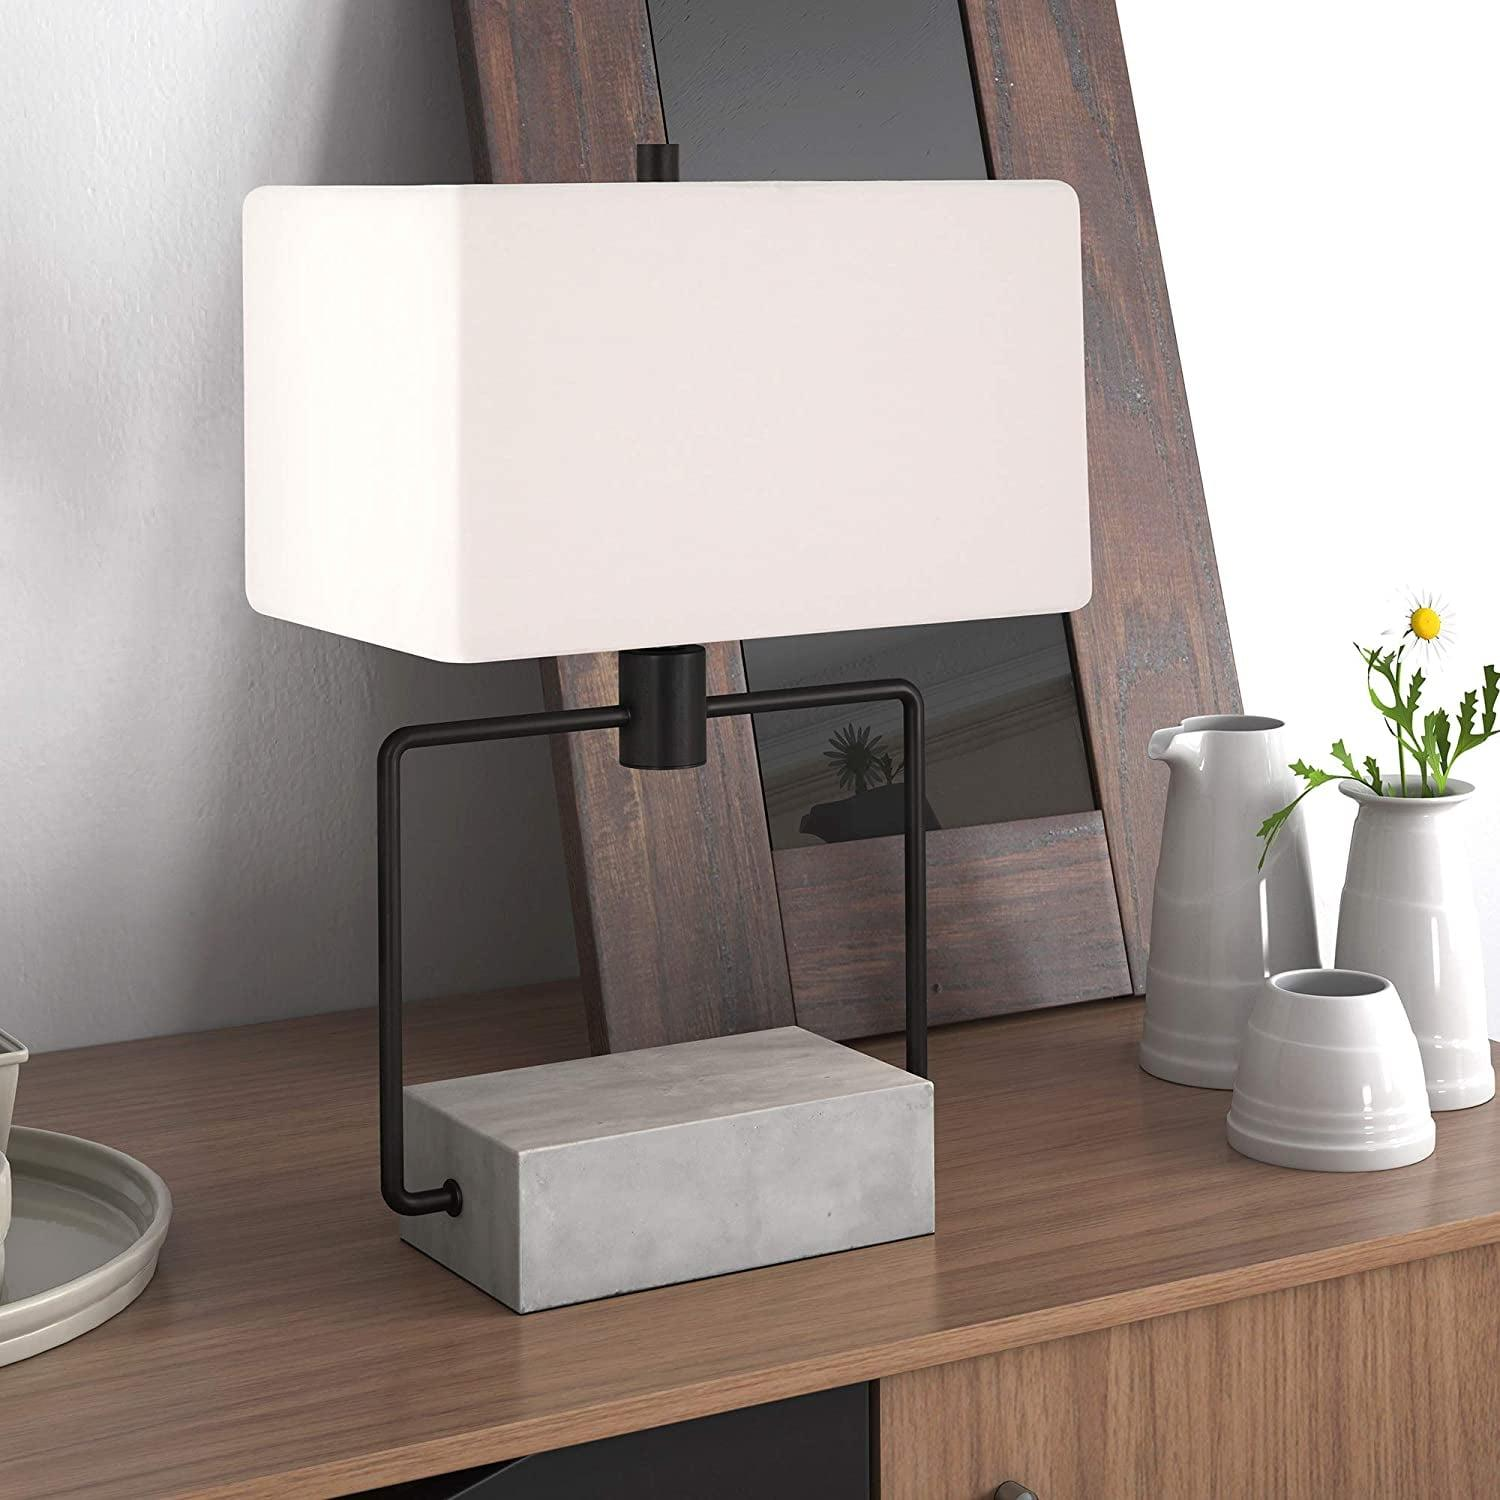 <p>The design of this <span>Henn&amp;Hart Contemporary Modern Bedside Table</span> ($71, originally $80) is so cool.</p>